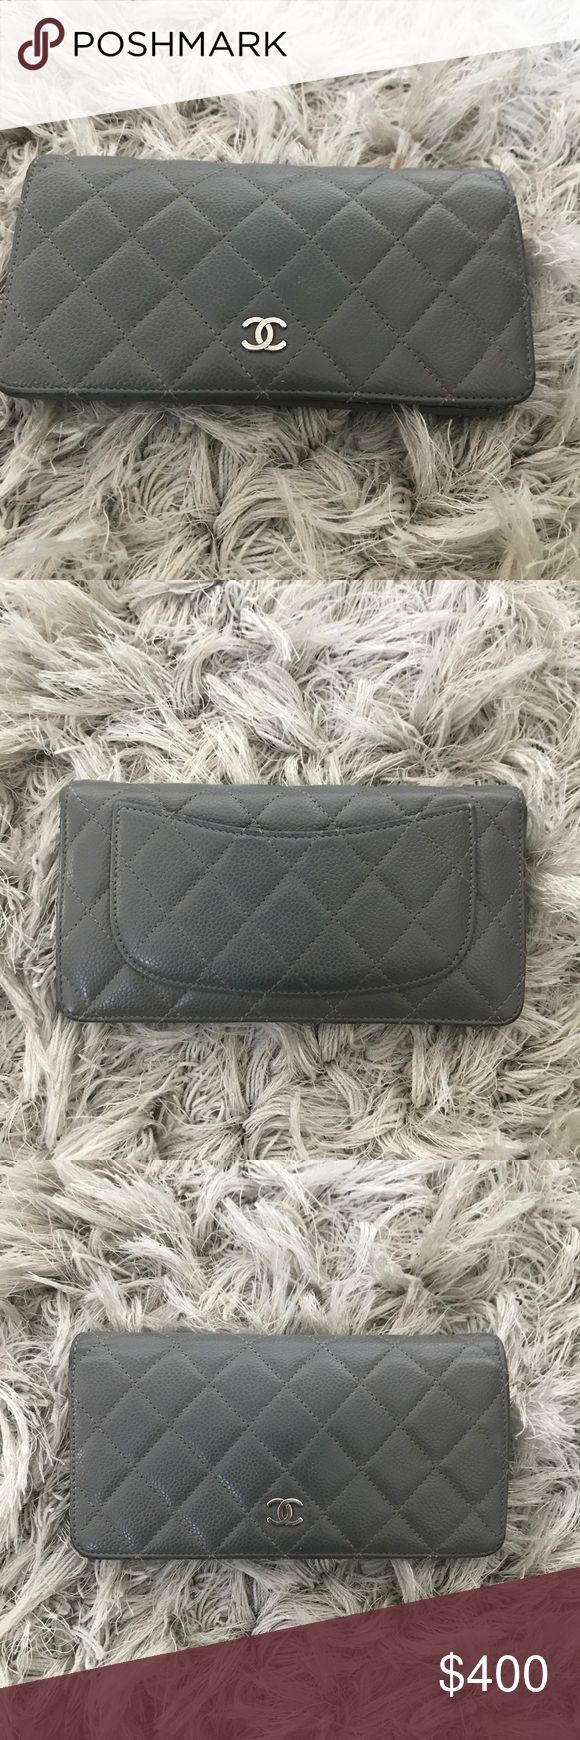 Authentic Chanel Grey Wallet 100% authentic Chanel wallet. Color grey. Made in France. Purchased at Saks Fifth Avenue. Has normal wear and tear, which is reflected in price. I do not have original box or authenticity card. CHANEL Bags Wallets